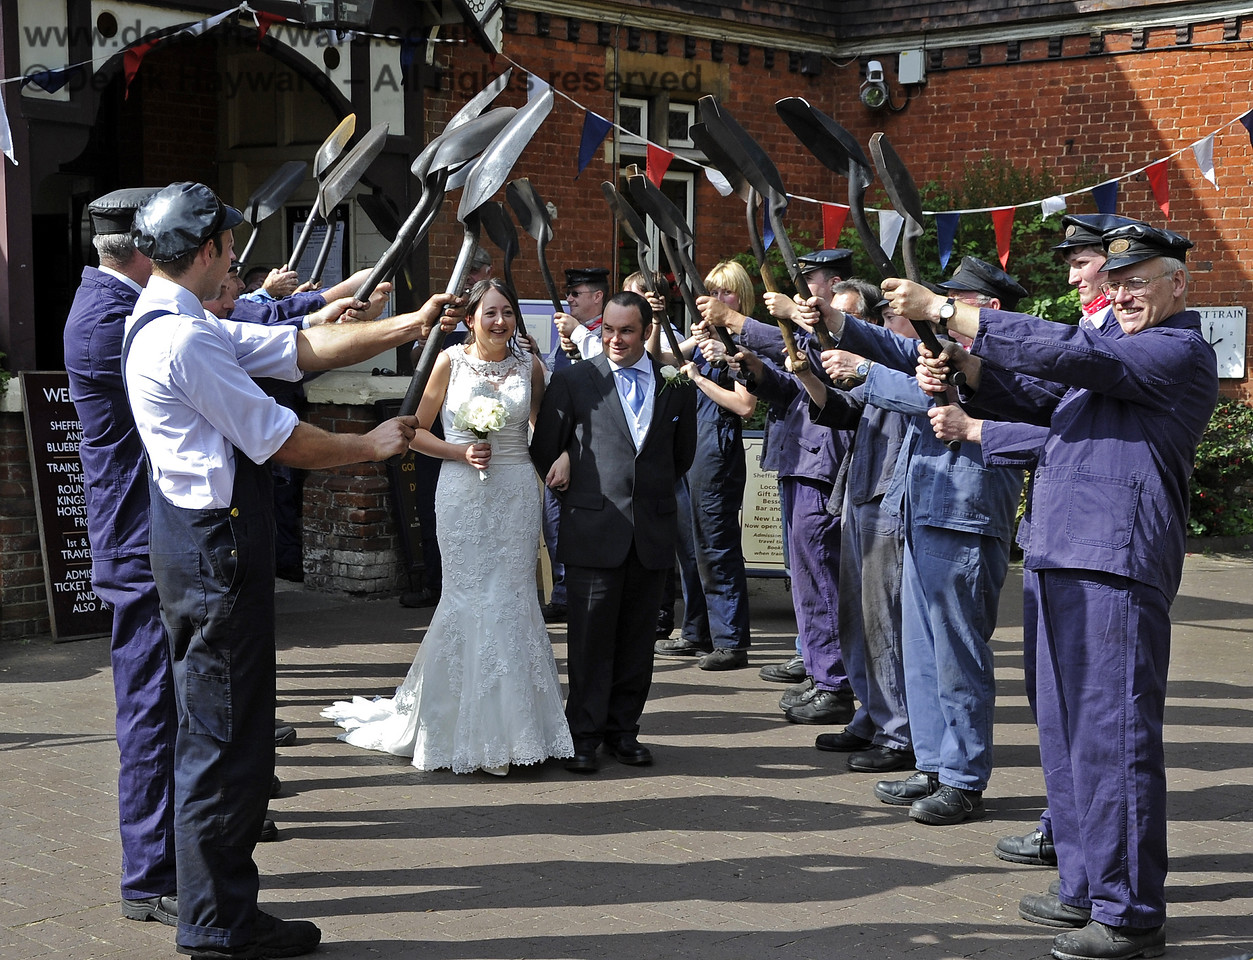 Members of the Locomotive Department form an impressive Guard of Honour for a staff wedding at Sheffield Park.  15.09.2012  5677